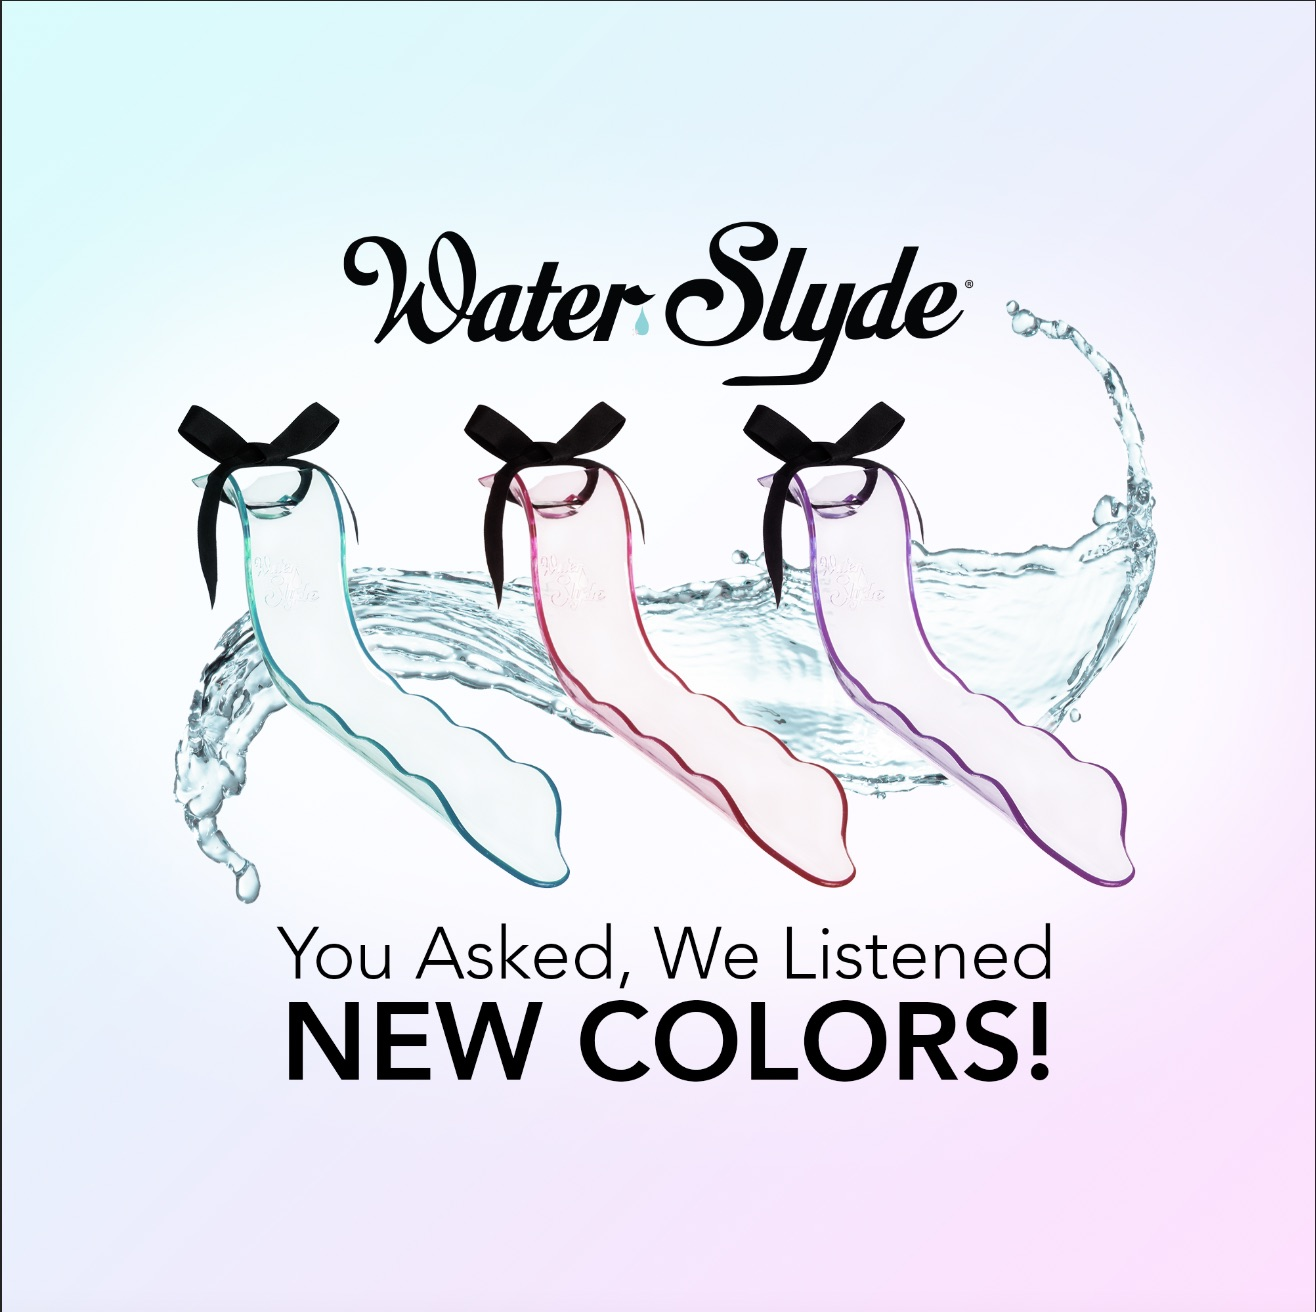 WaterSlyde by Lovability in 3 new colors